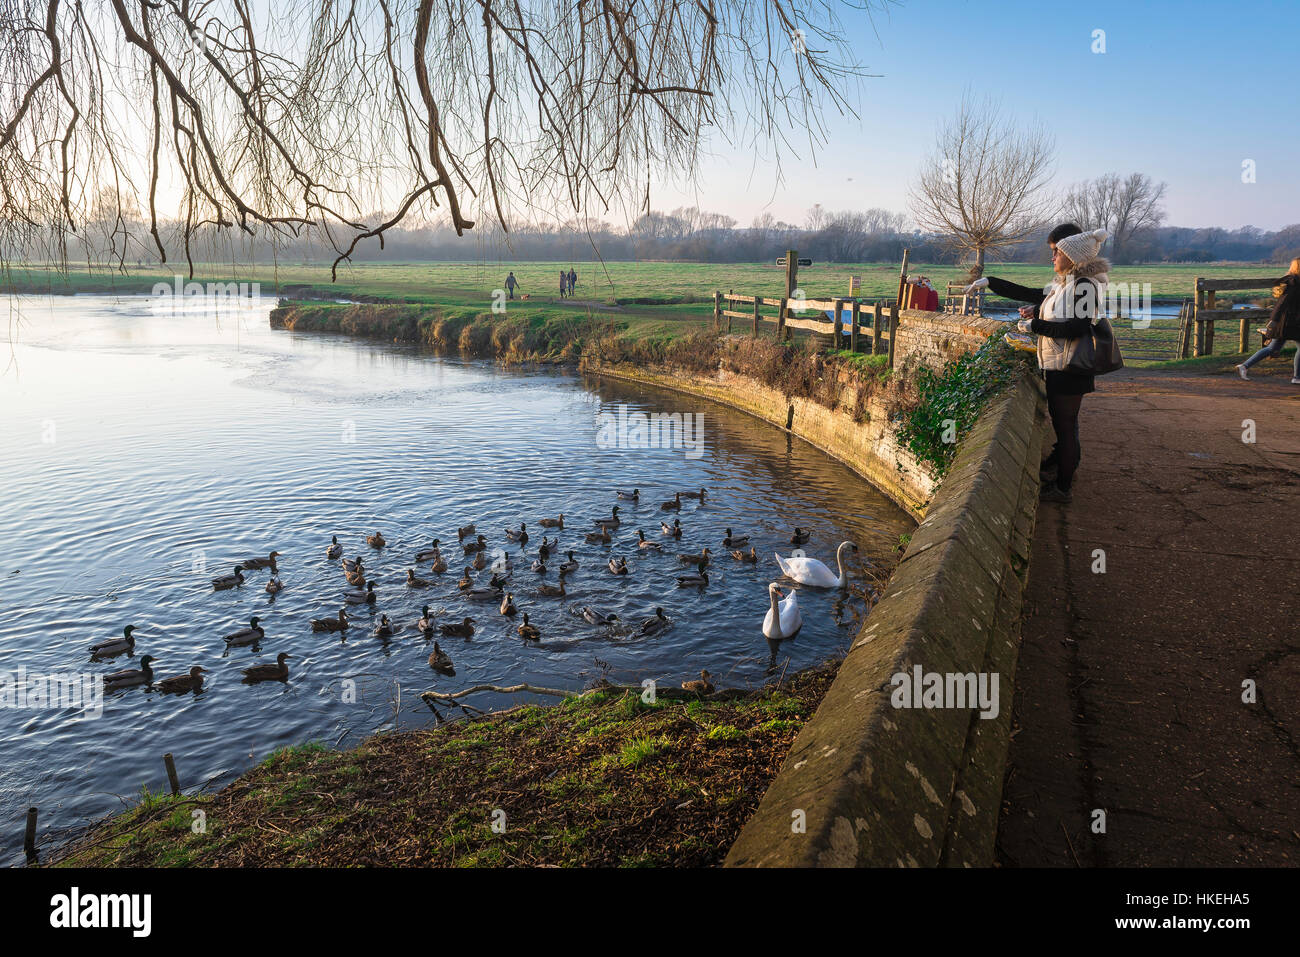 Feeding ducks, view of a young couple feeding ducks along the River Stour, Babergh district, Suffolk UK. - Stock Image